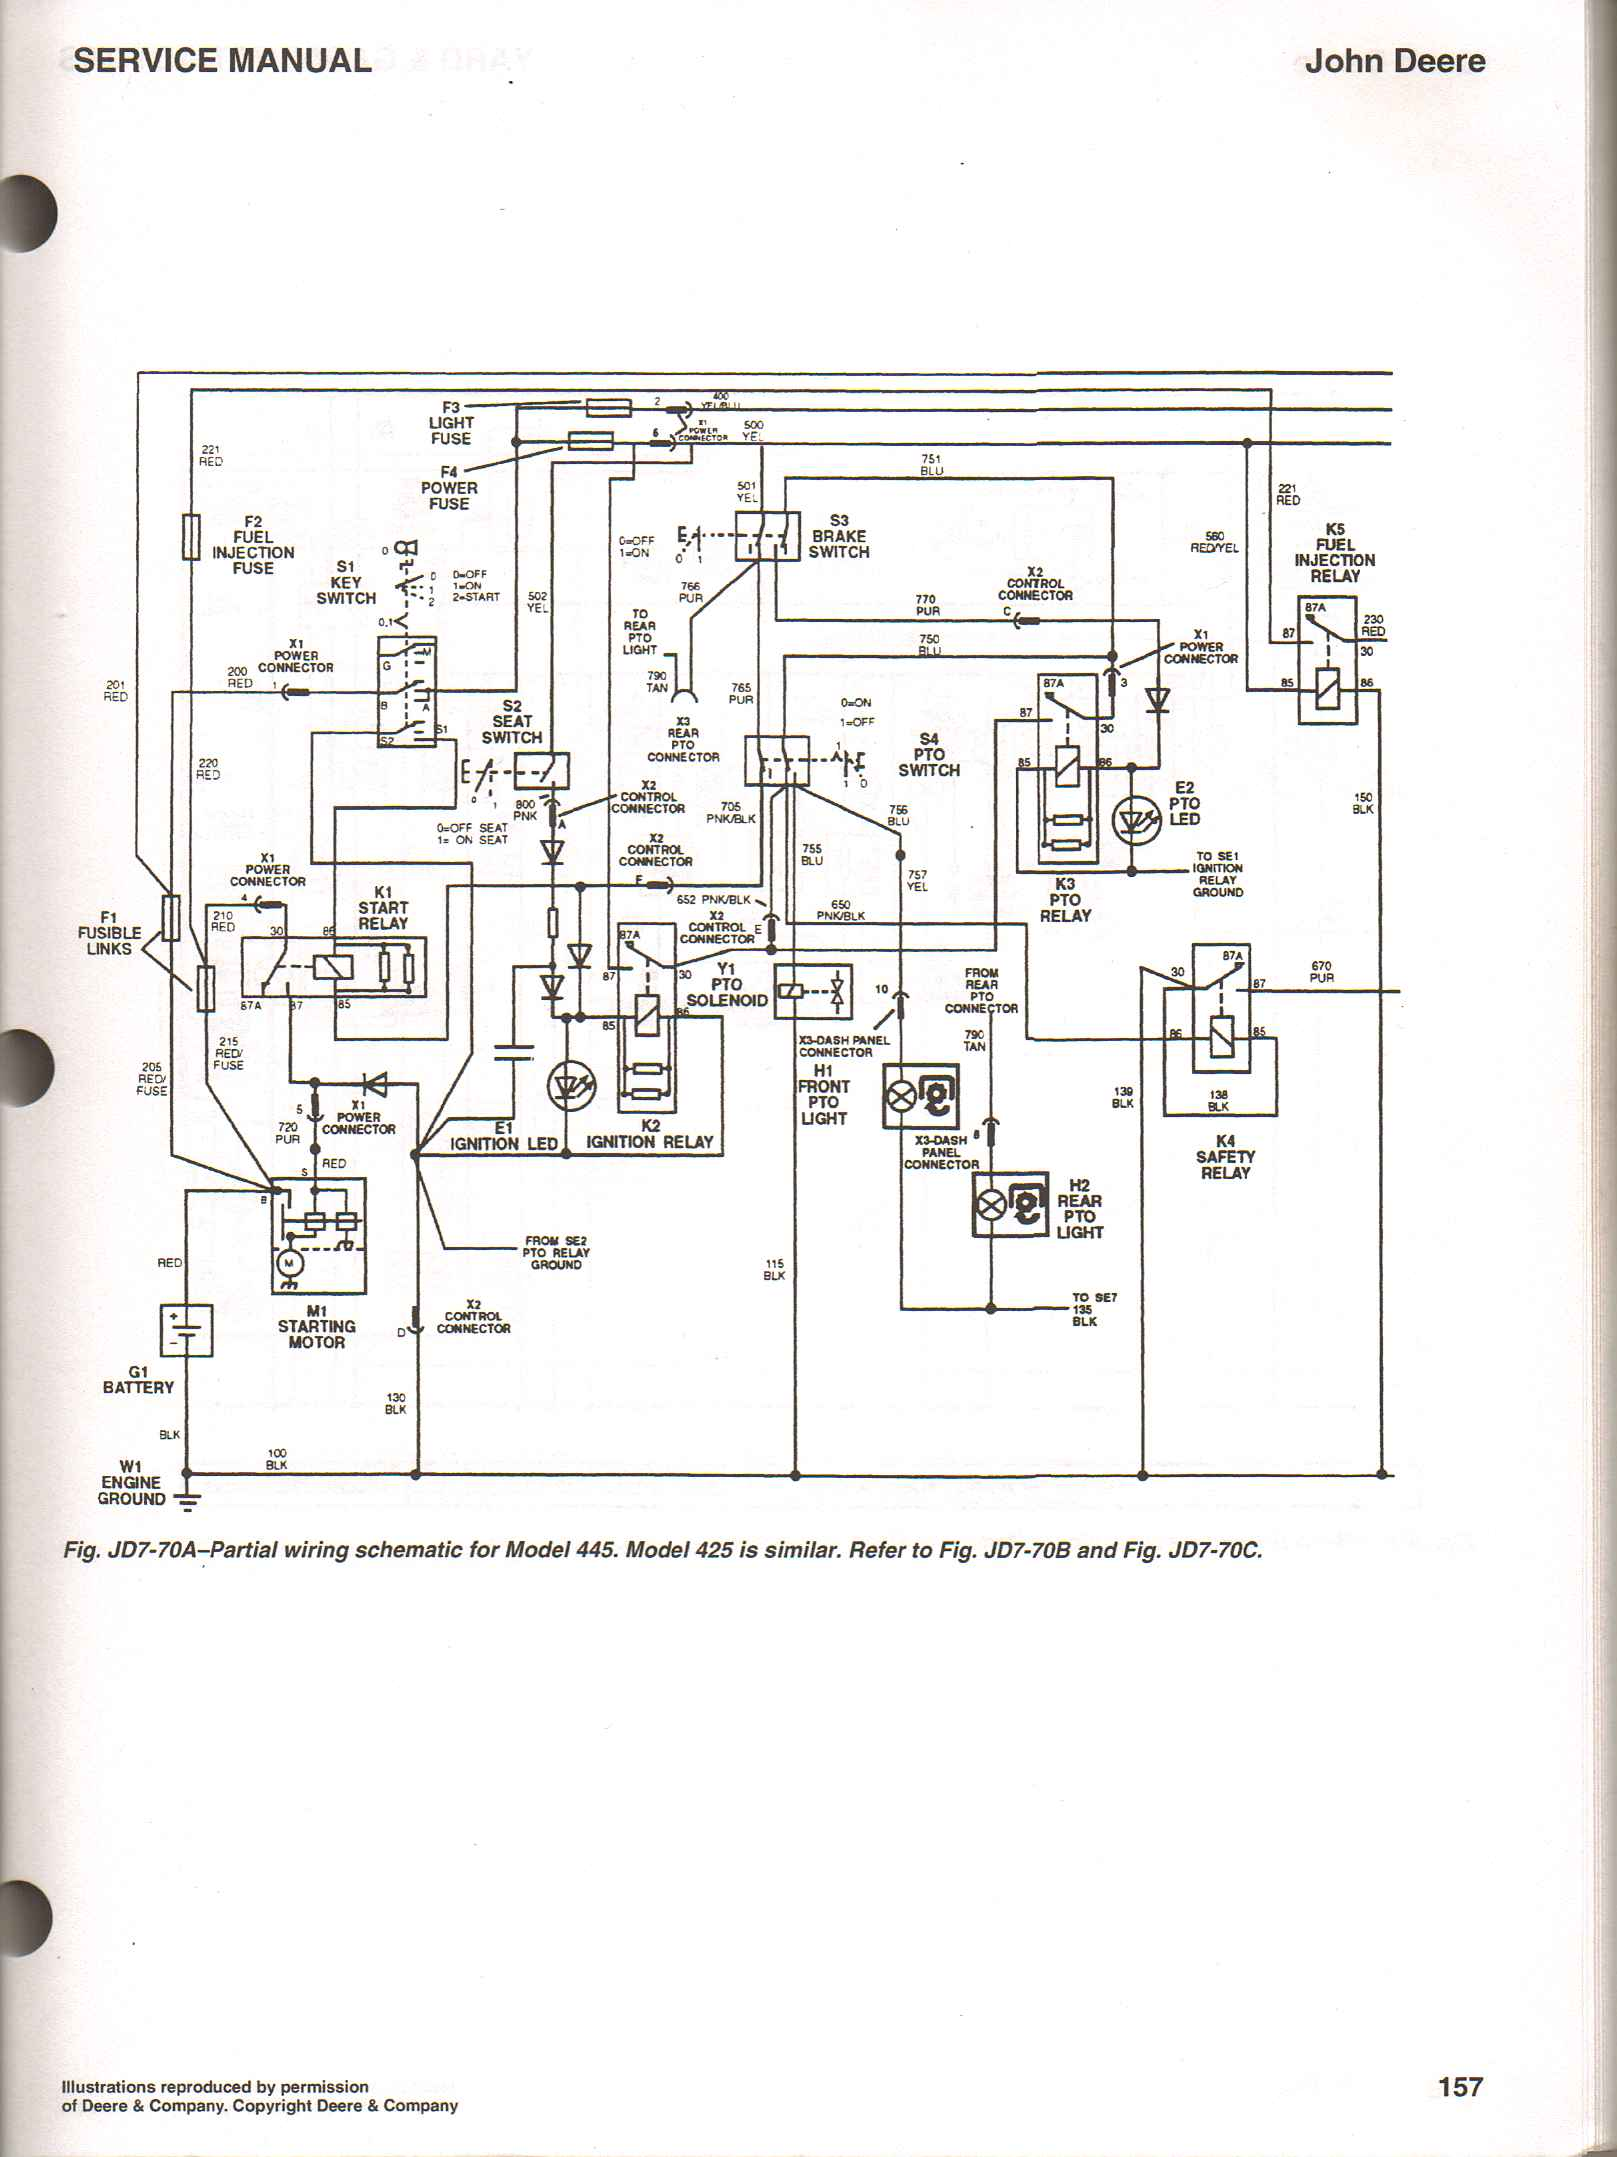 DIAGRAM] John Deere Electrical Wiring Diagrams FULL Version HD Quality Wiring  Diagrams - DIAGRAMLAND.ARTE-VIAGGI.ITarte-viaggi.it